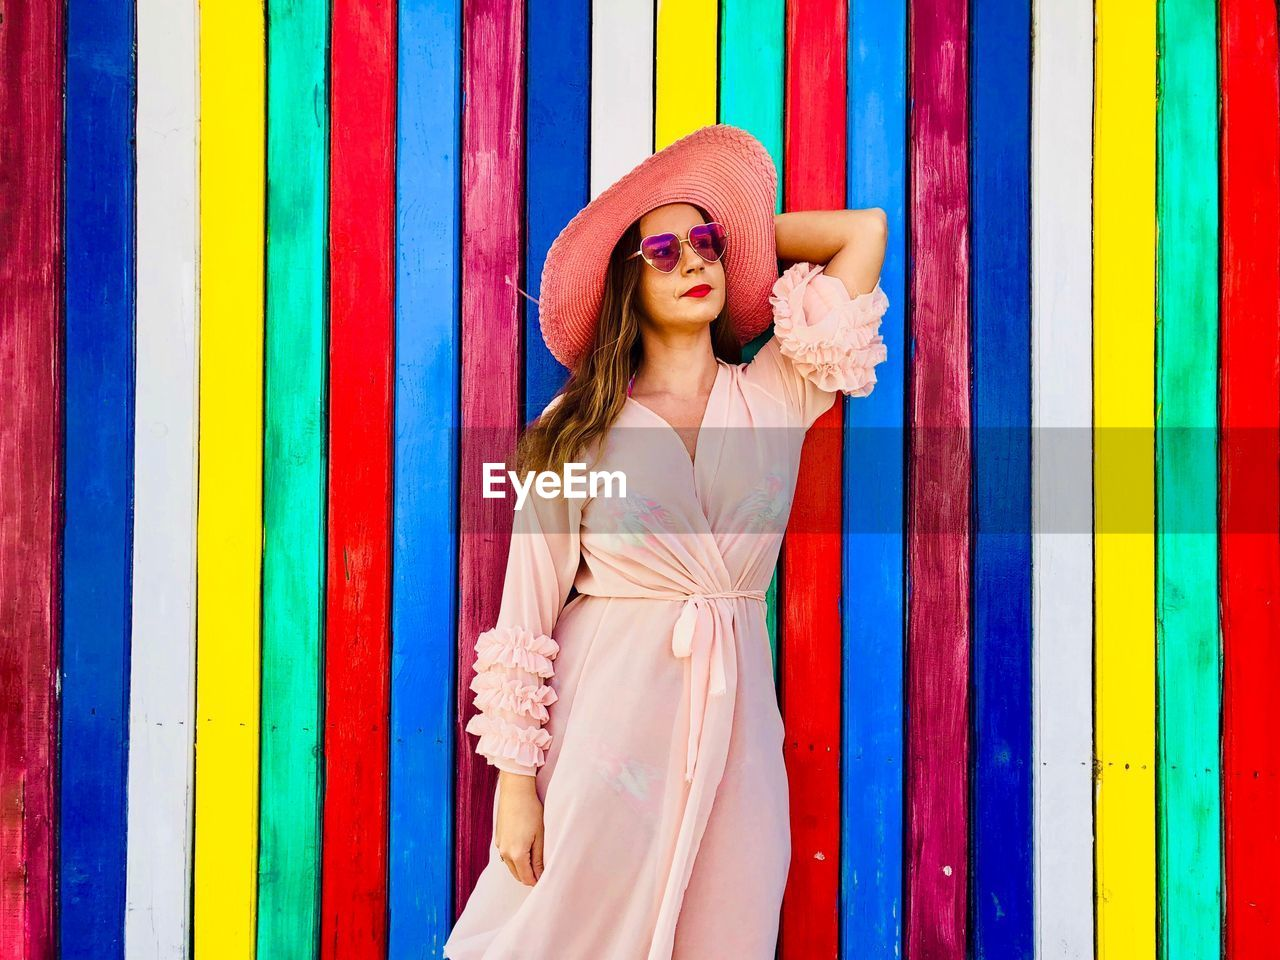 Woman in dress standing against multi colored wall